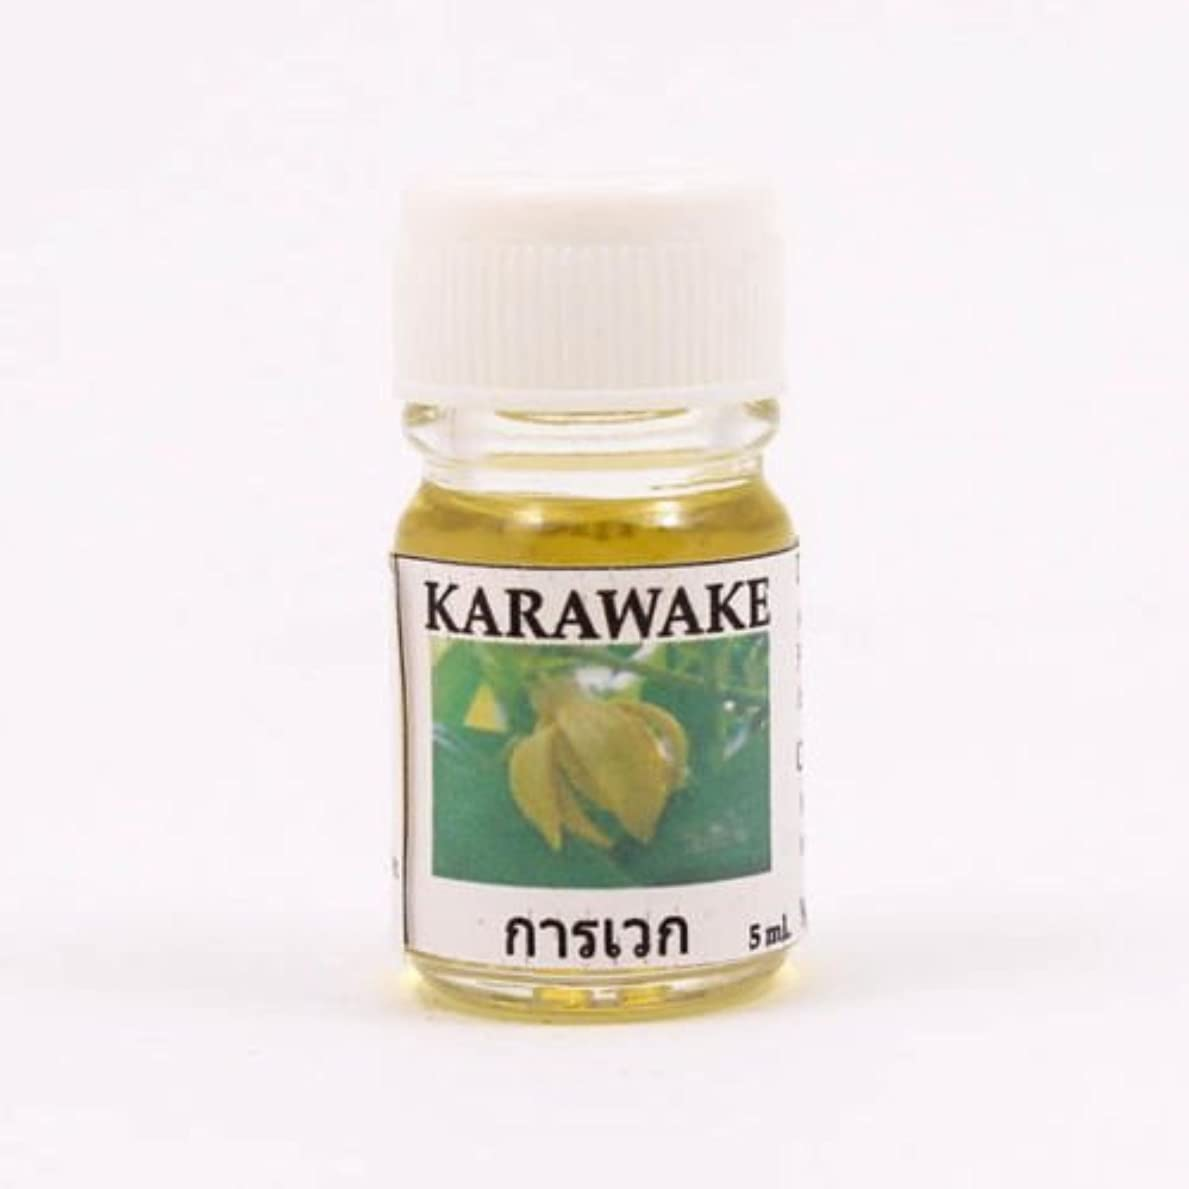 回転するショッキング道徳6X Karawake Aroma Fragrance Essential Oil 5ML. cc Diffuser Burner Therapy